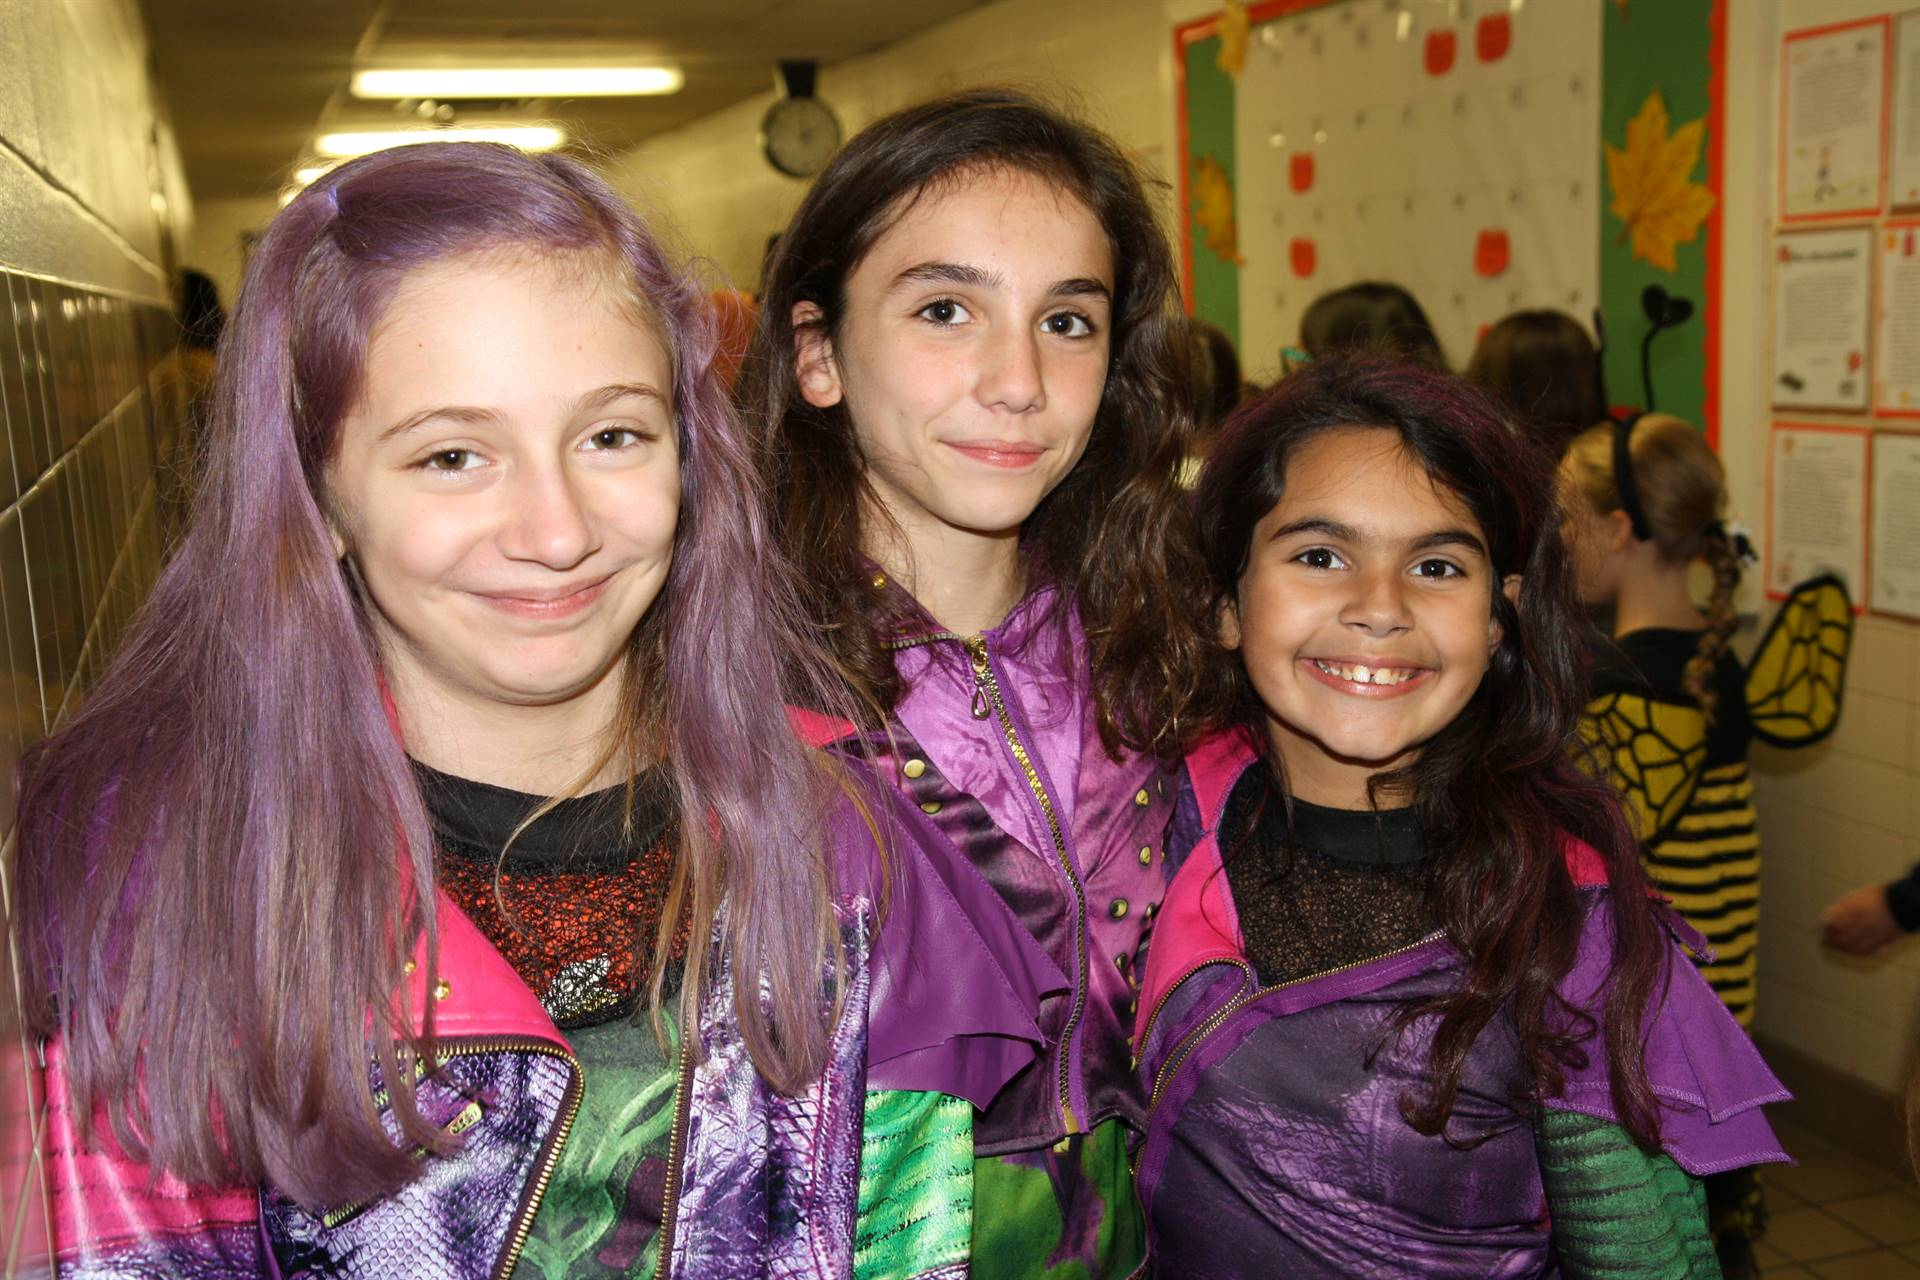 three girls dressed up for halloween event